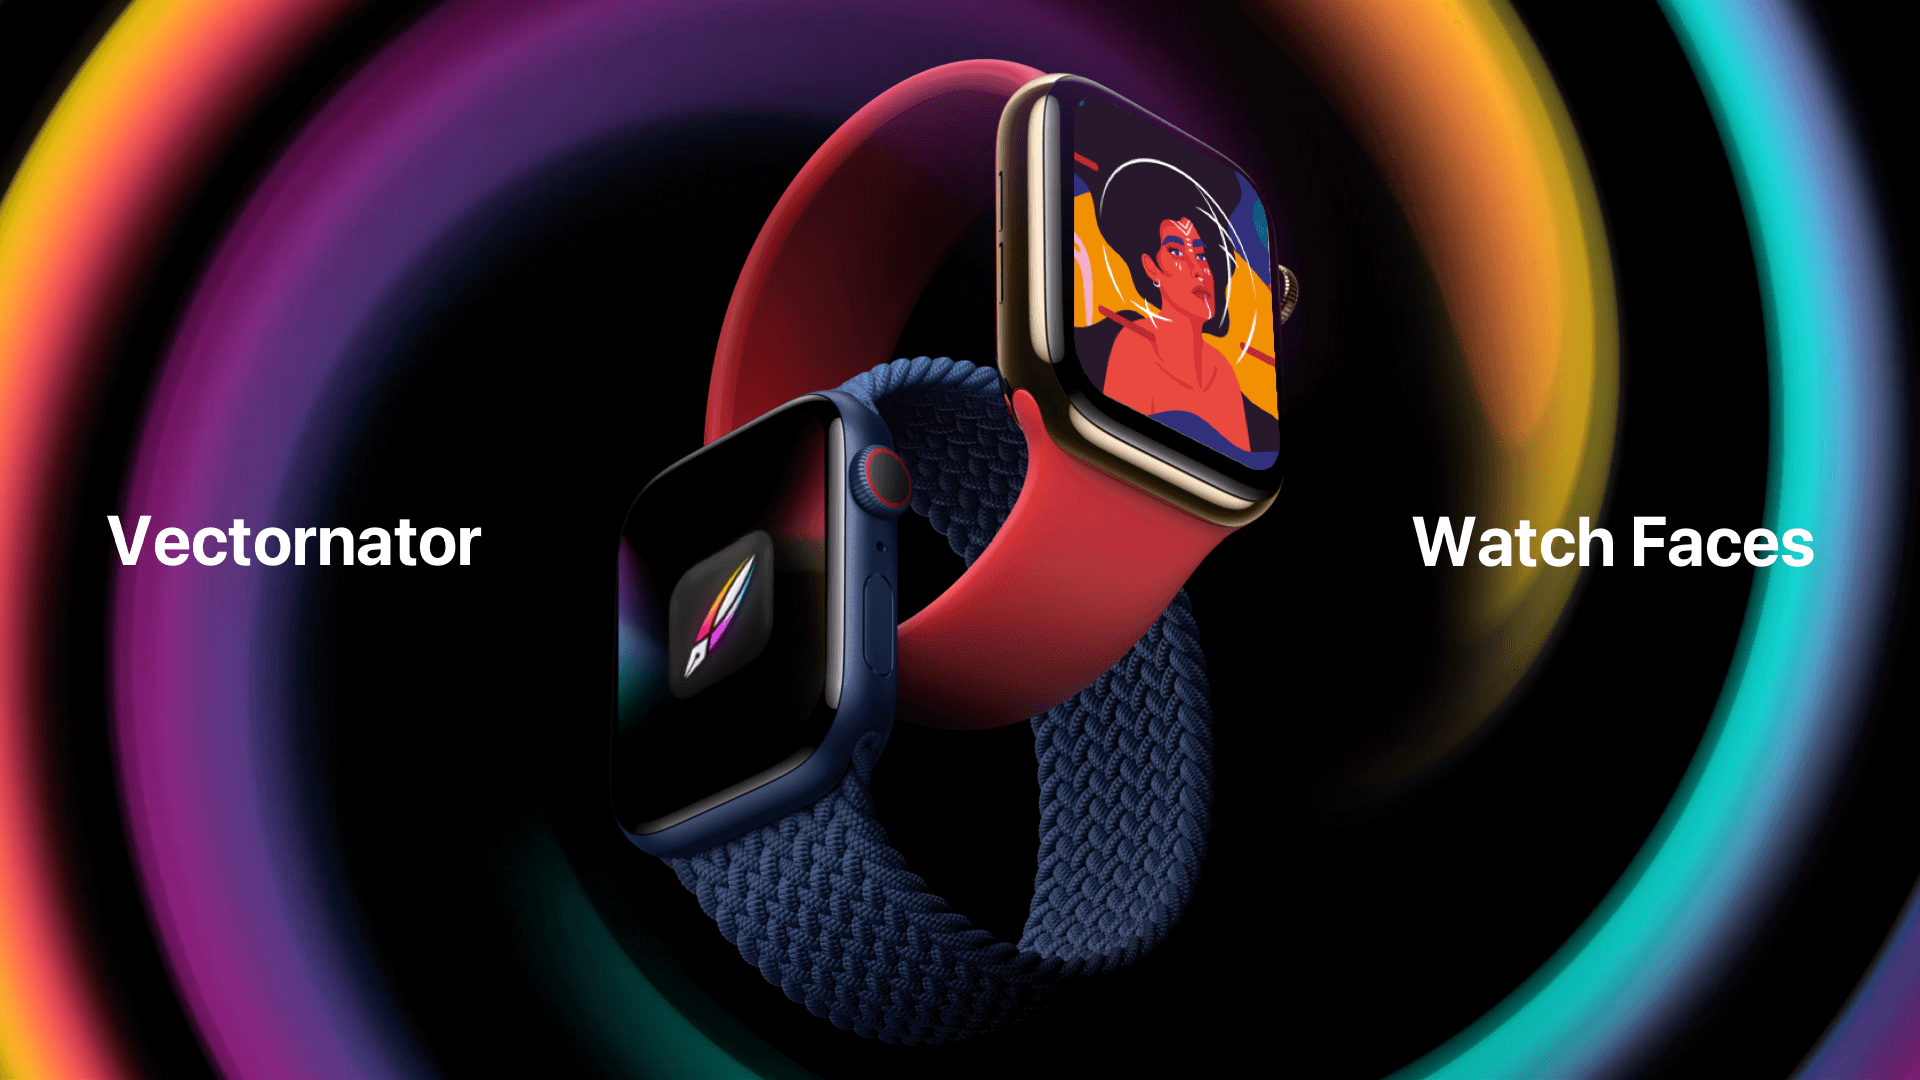 Introducing Vectornator Faces on Apple Watch